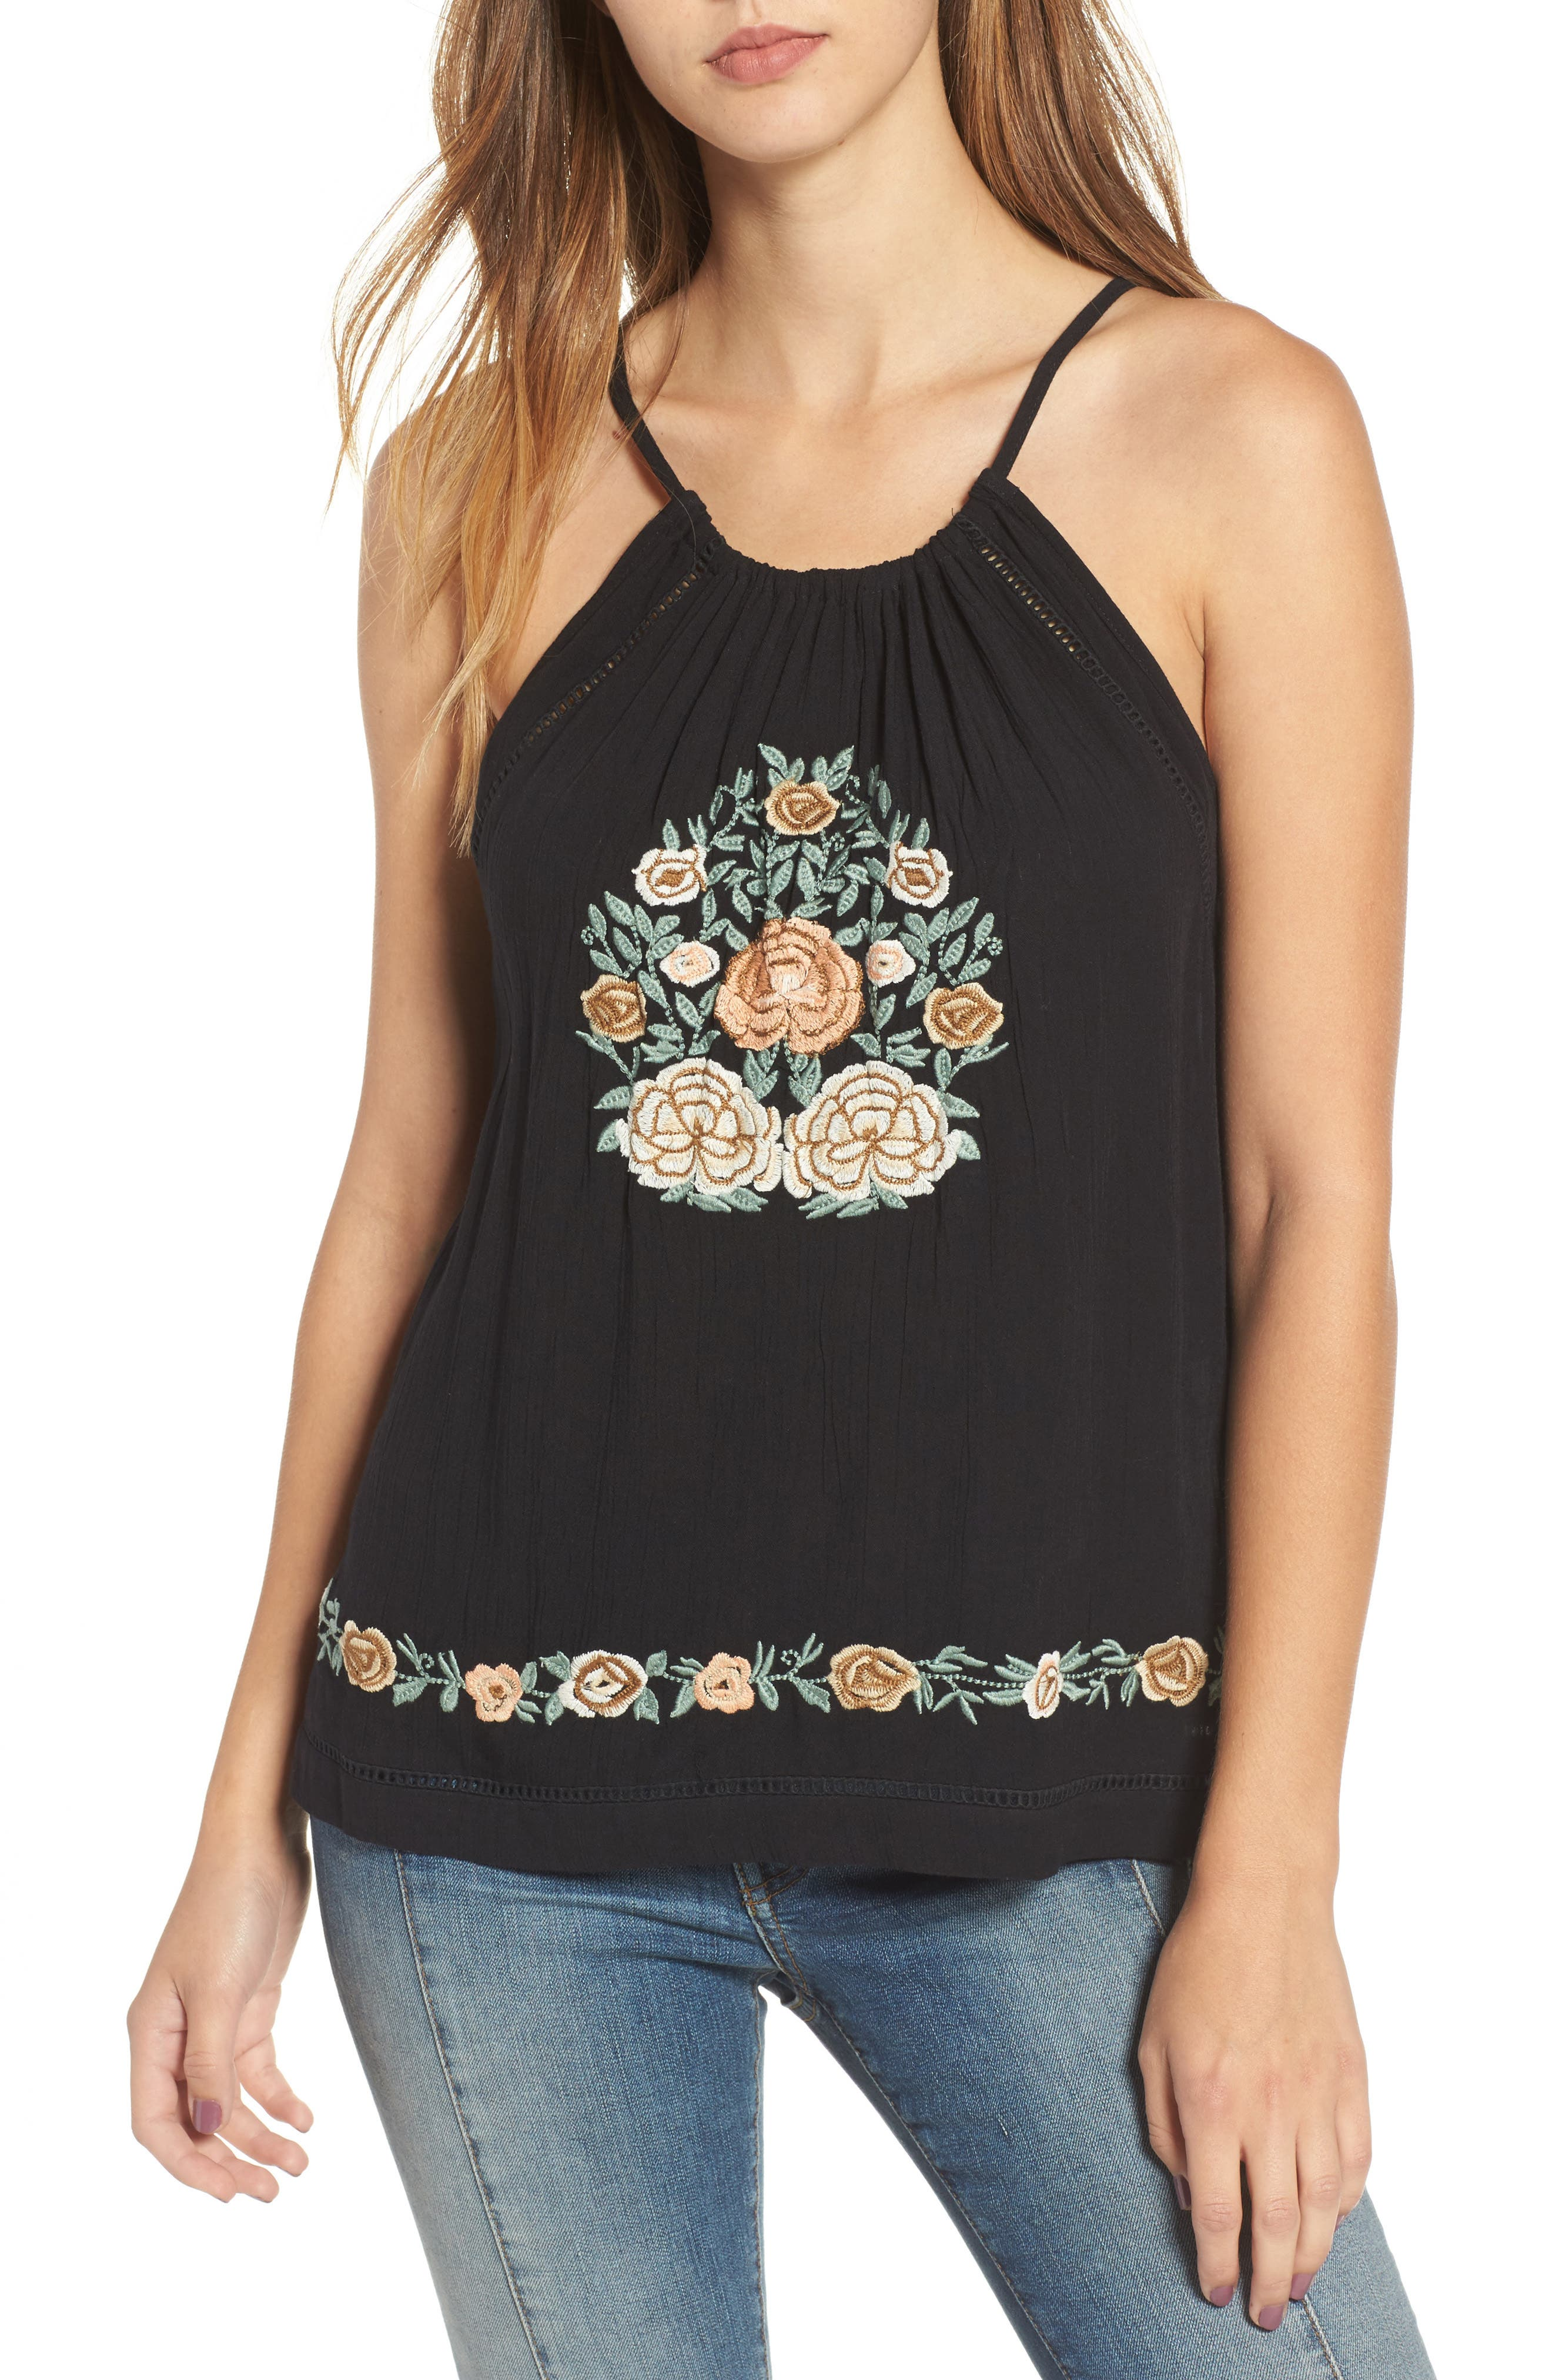 Band of Gypsies Floral Embroidered Tank